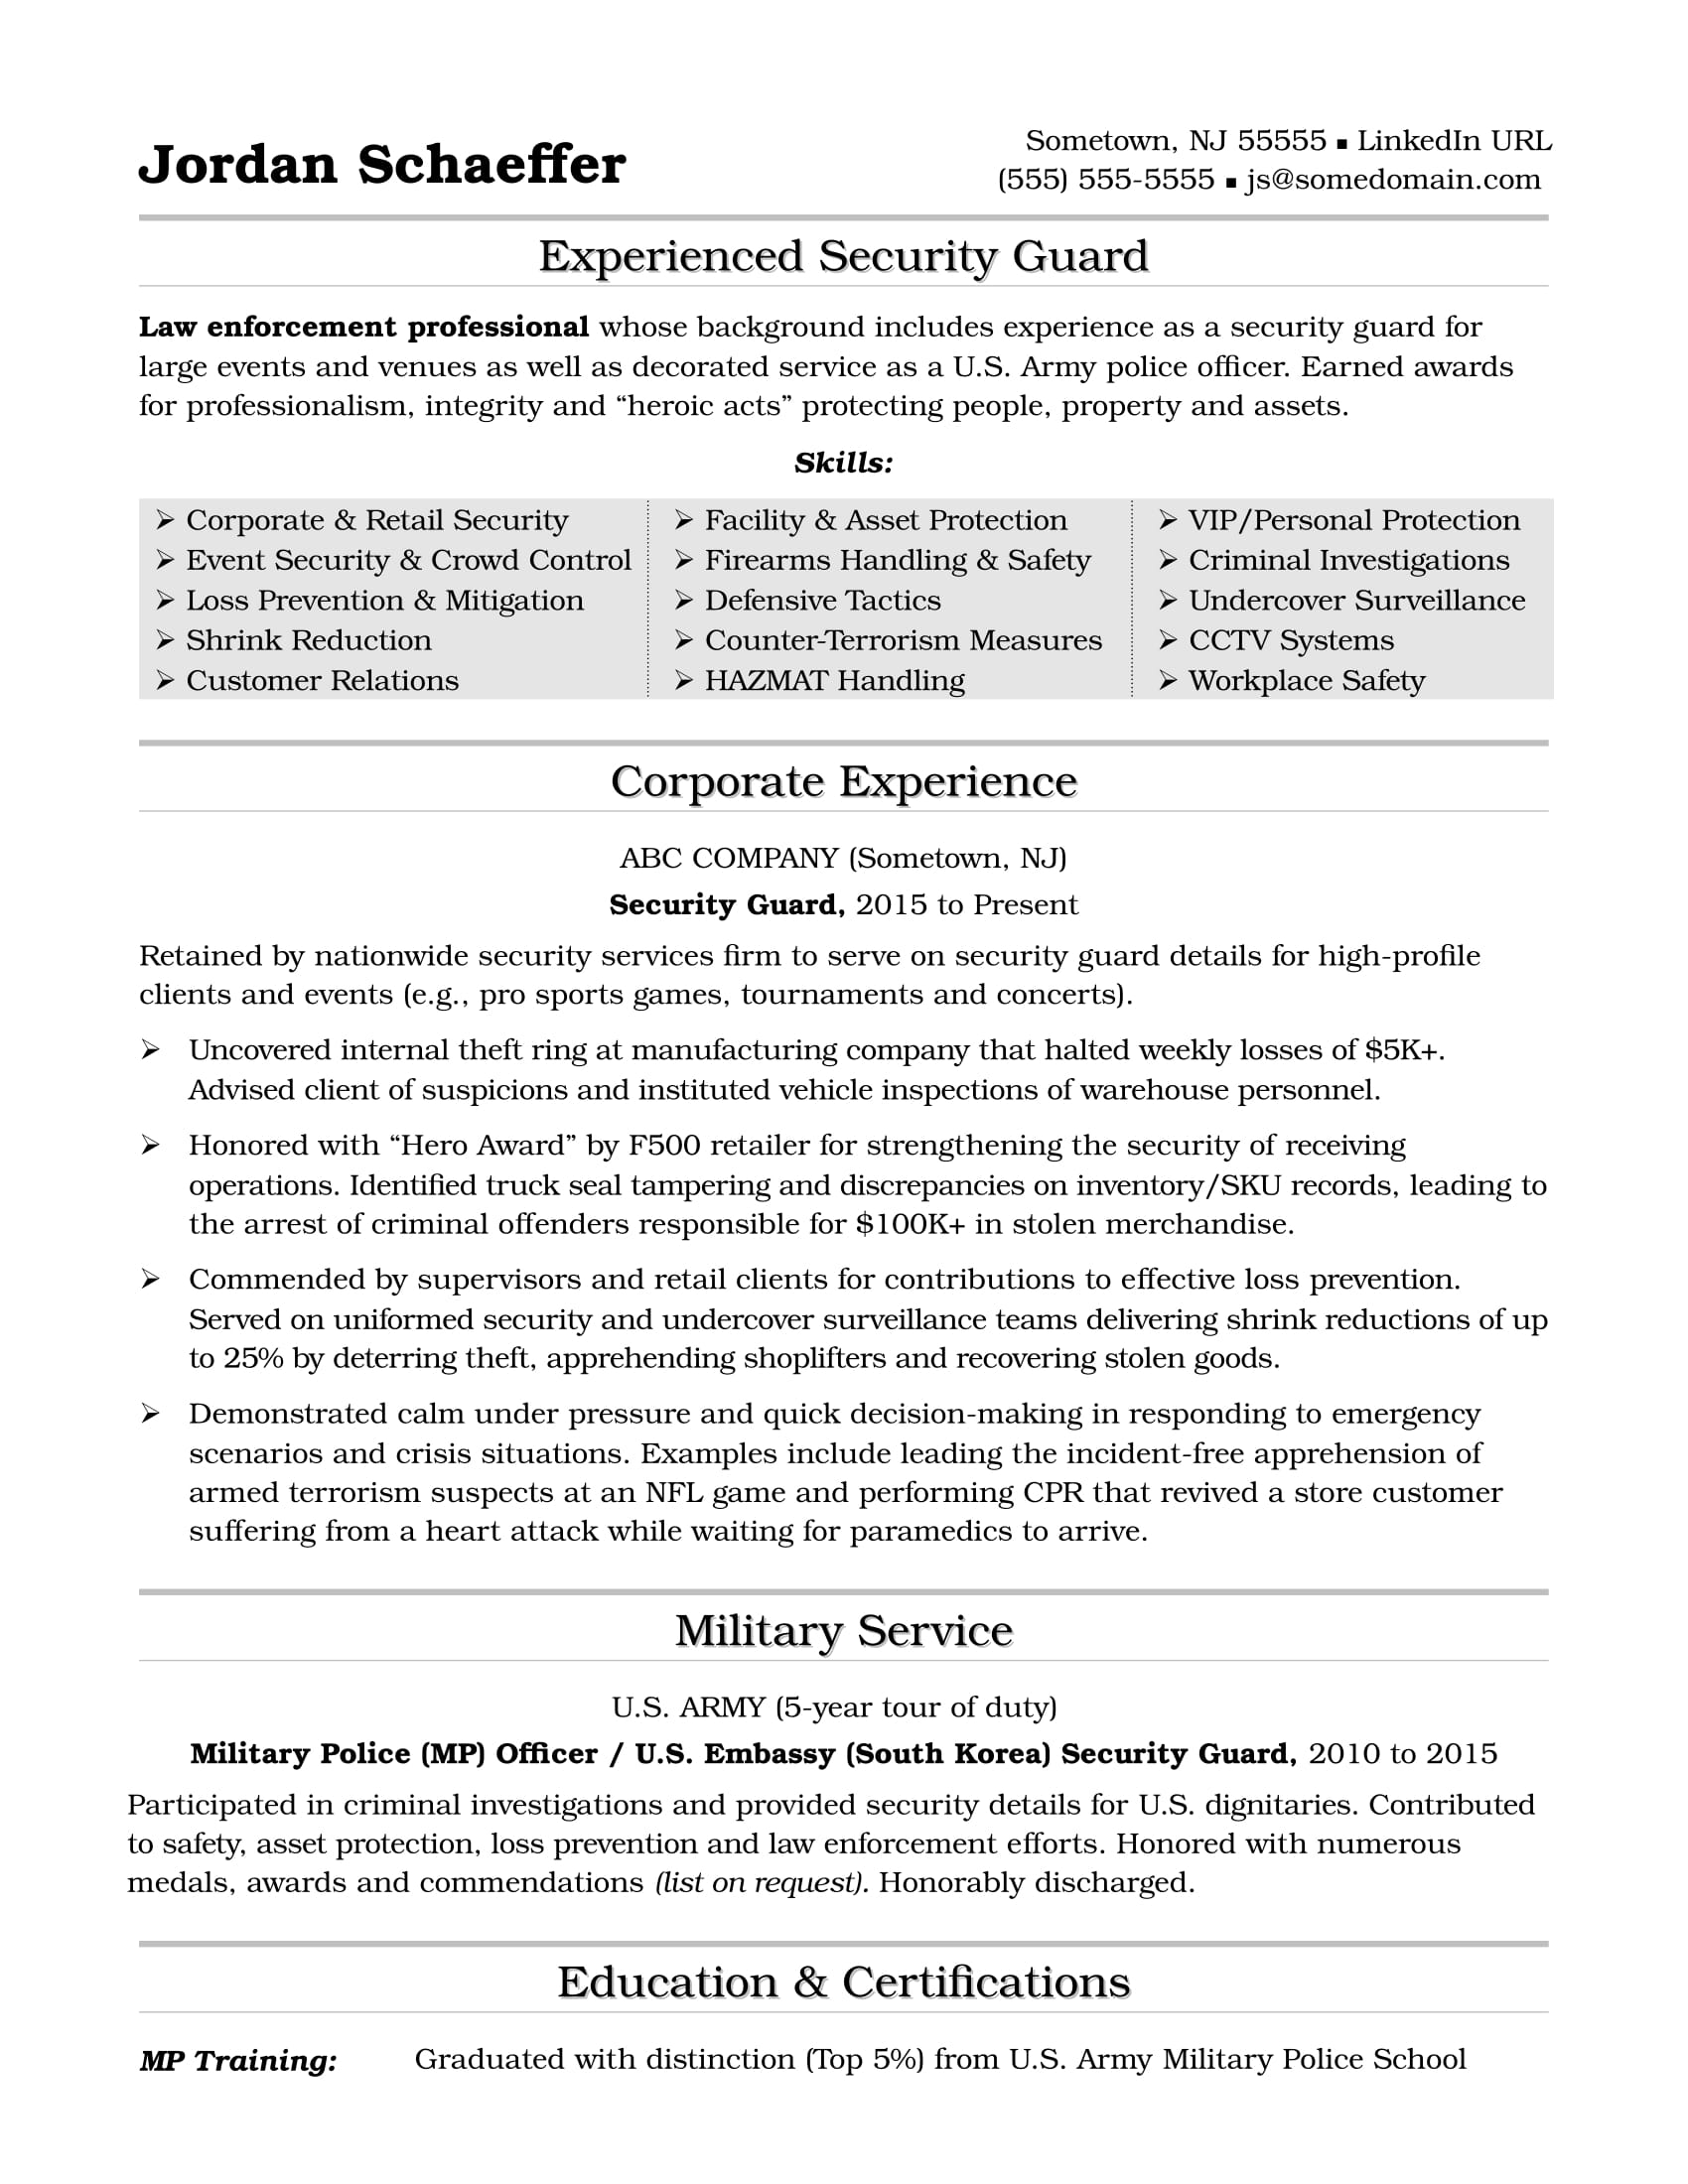 Amazing Security Guard Resume Sample With Security Resume